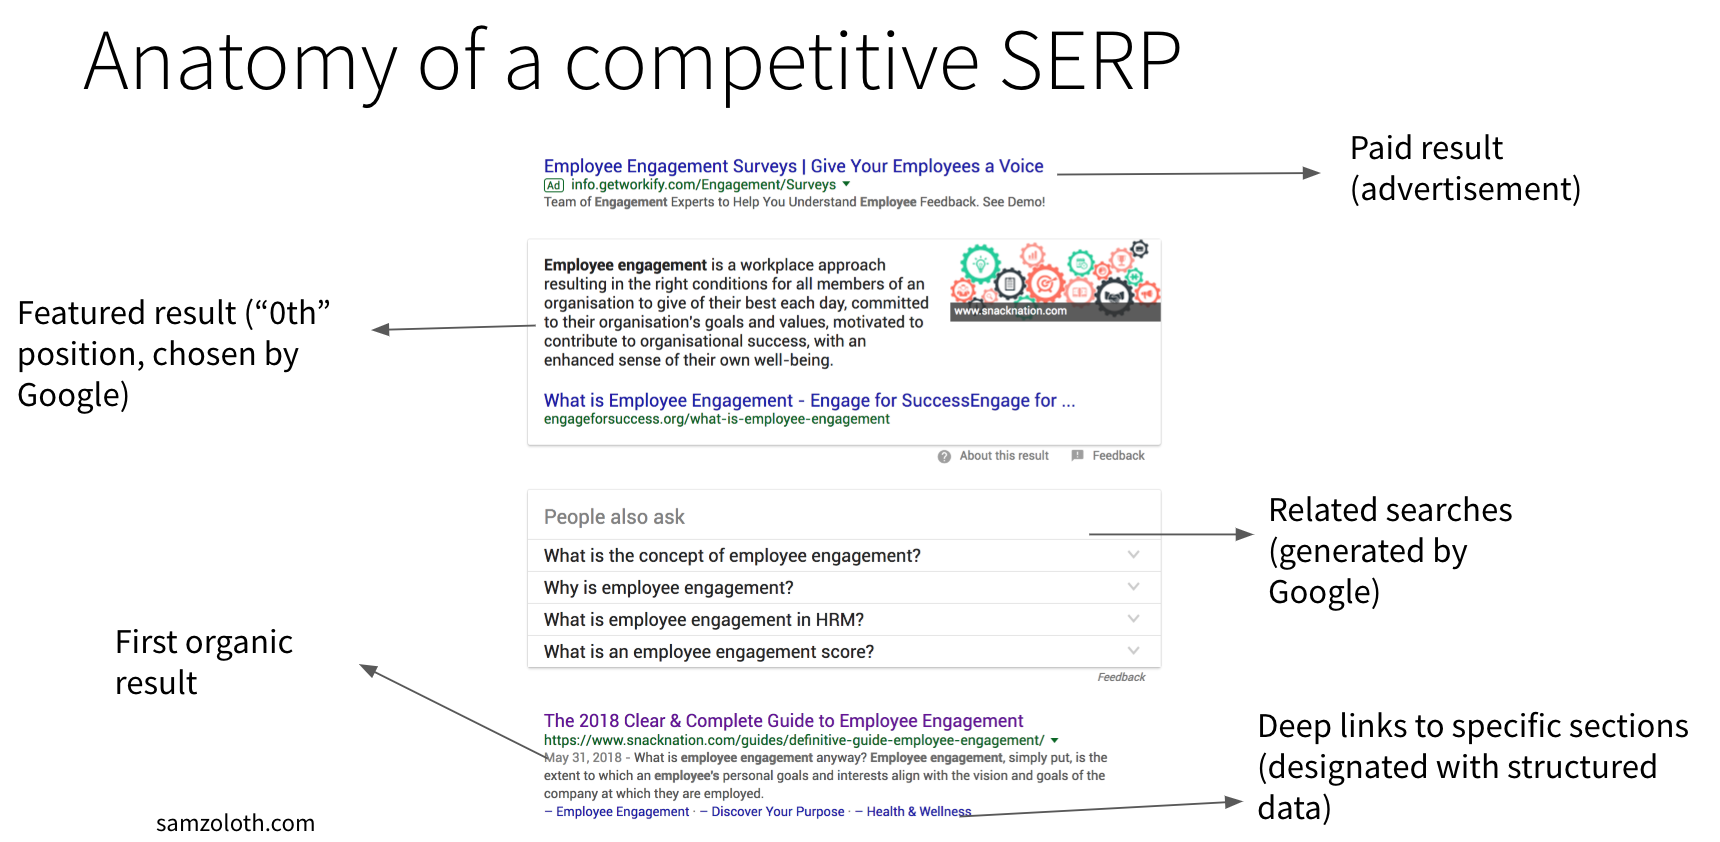 Competitive SERP on desktop